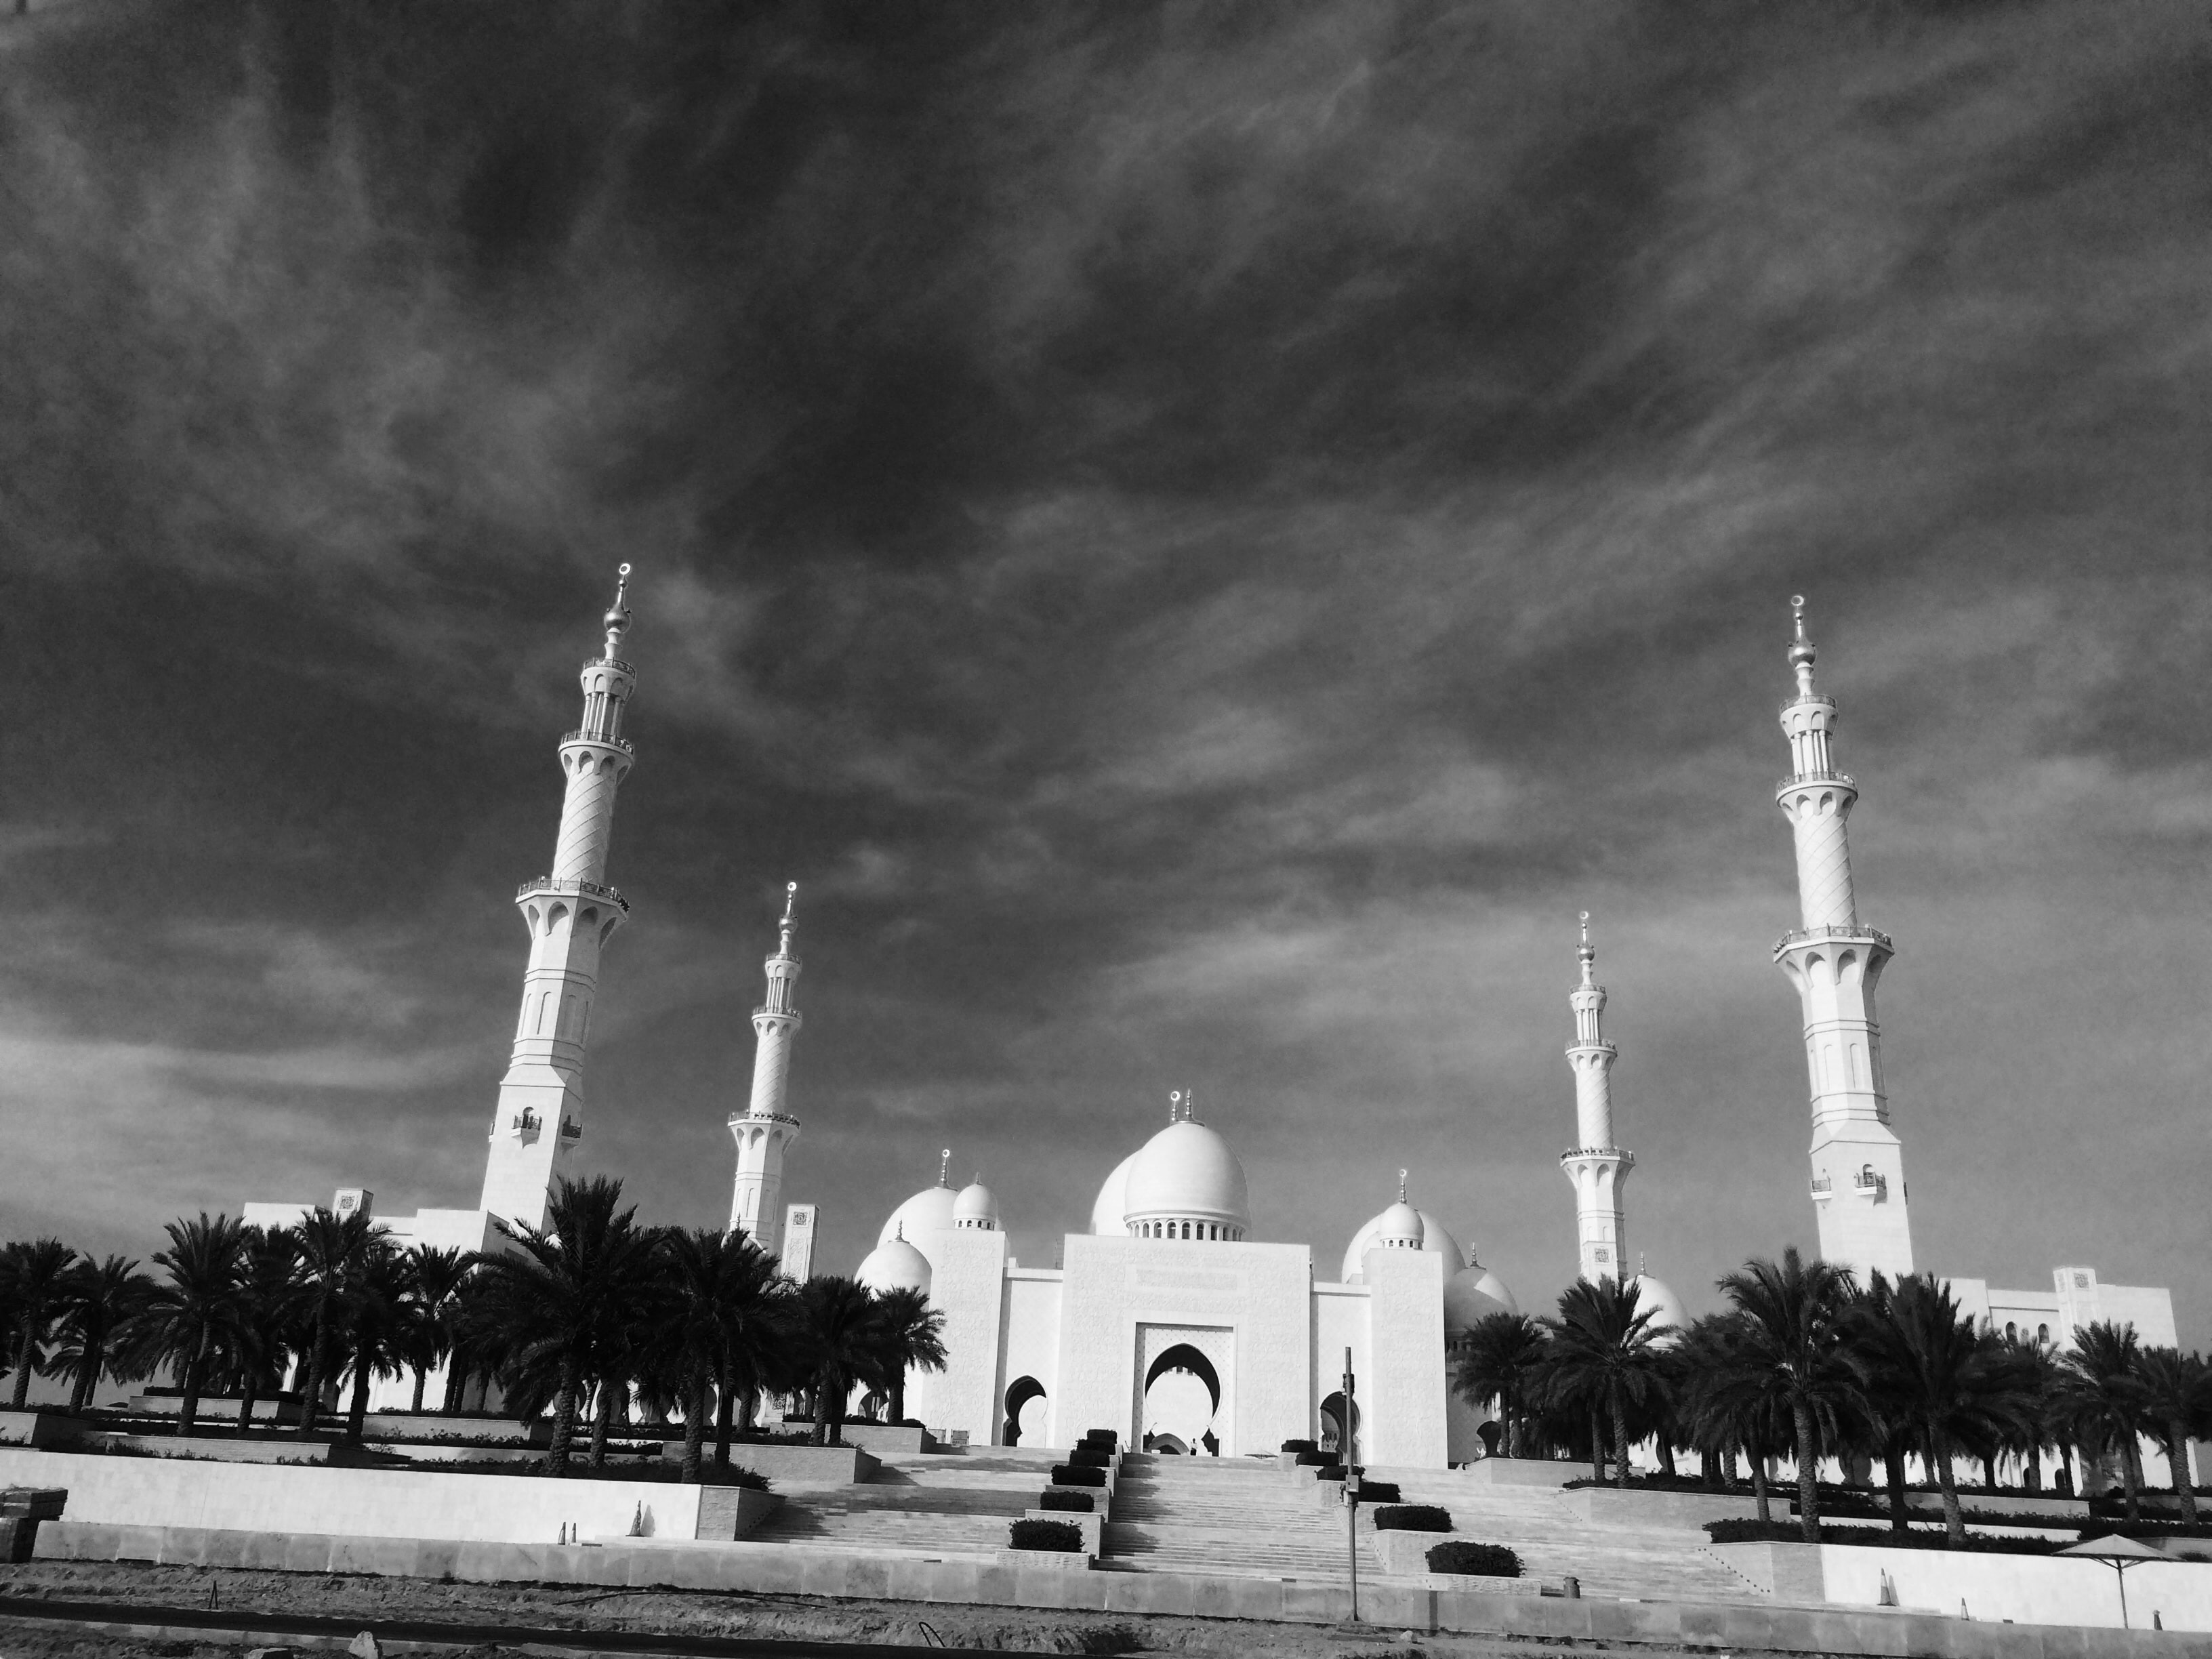 Free Unsplash photo from QaDiRi